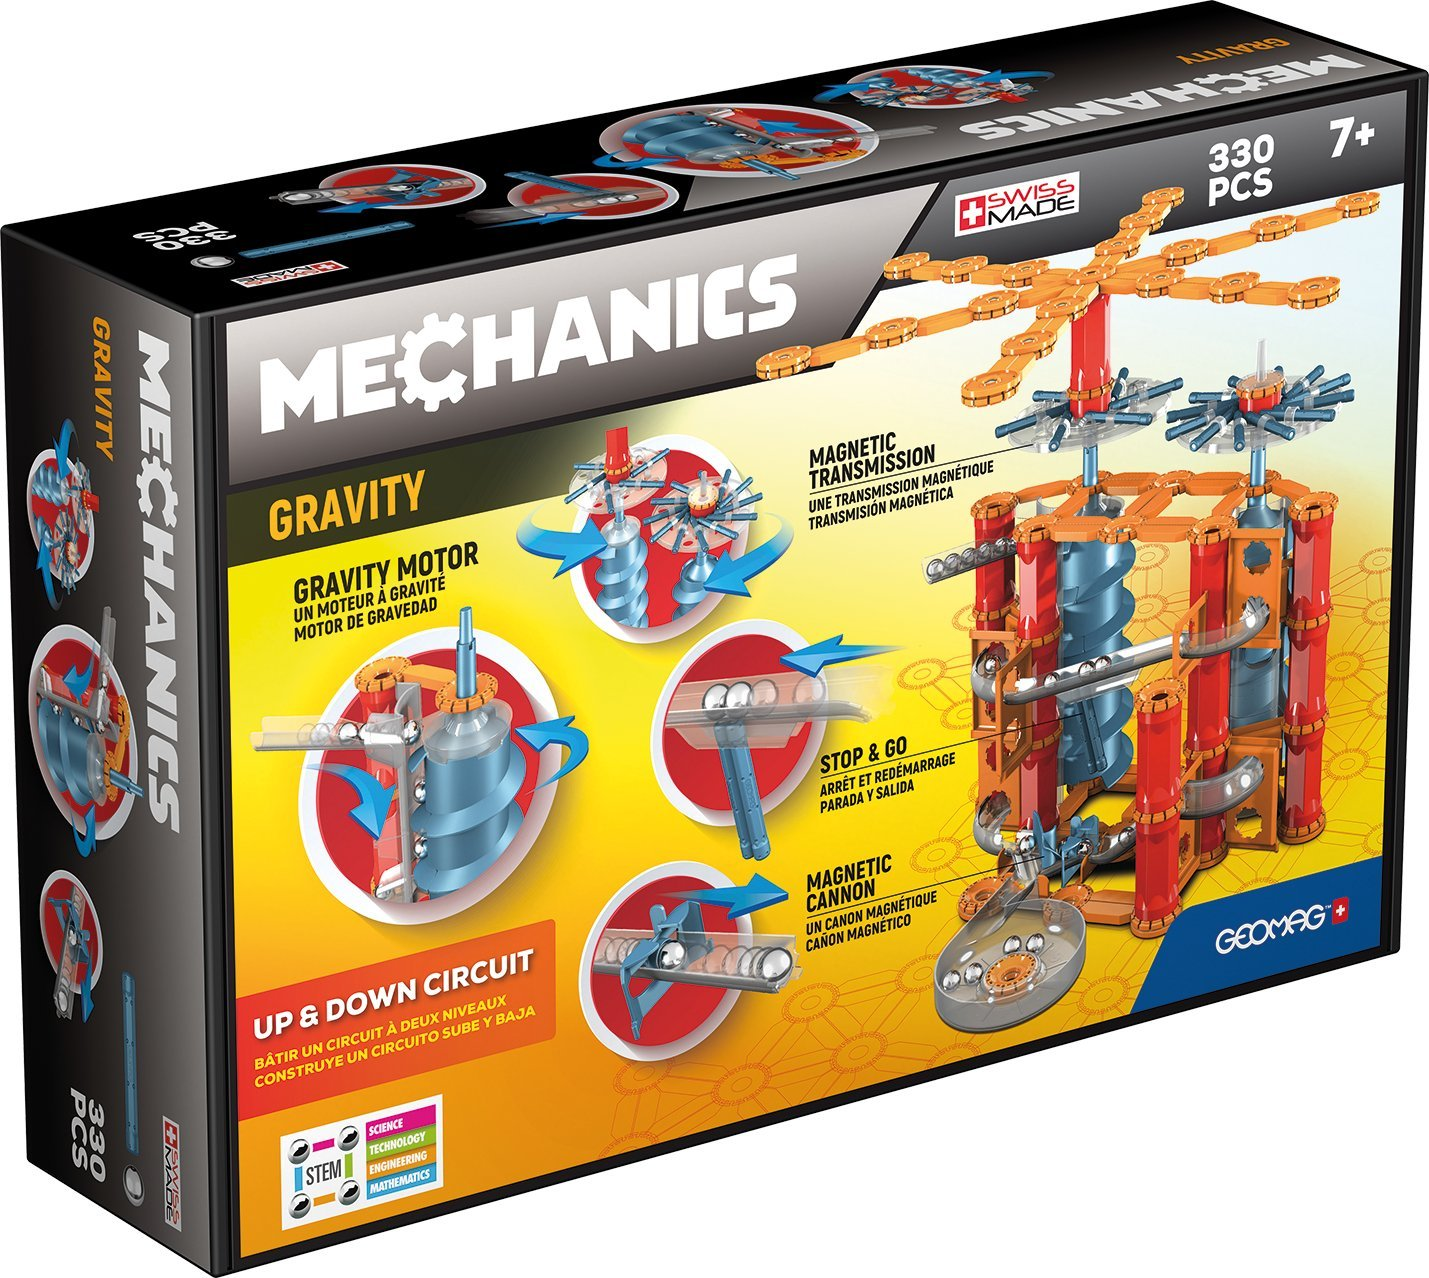 Geomag 776 Mechanics Gravity Up & Down